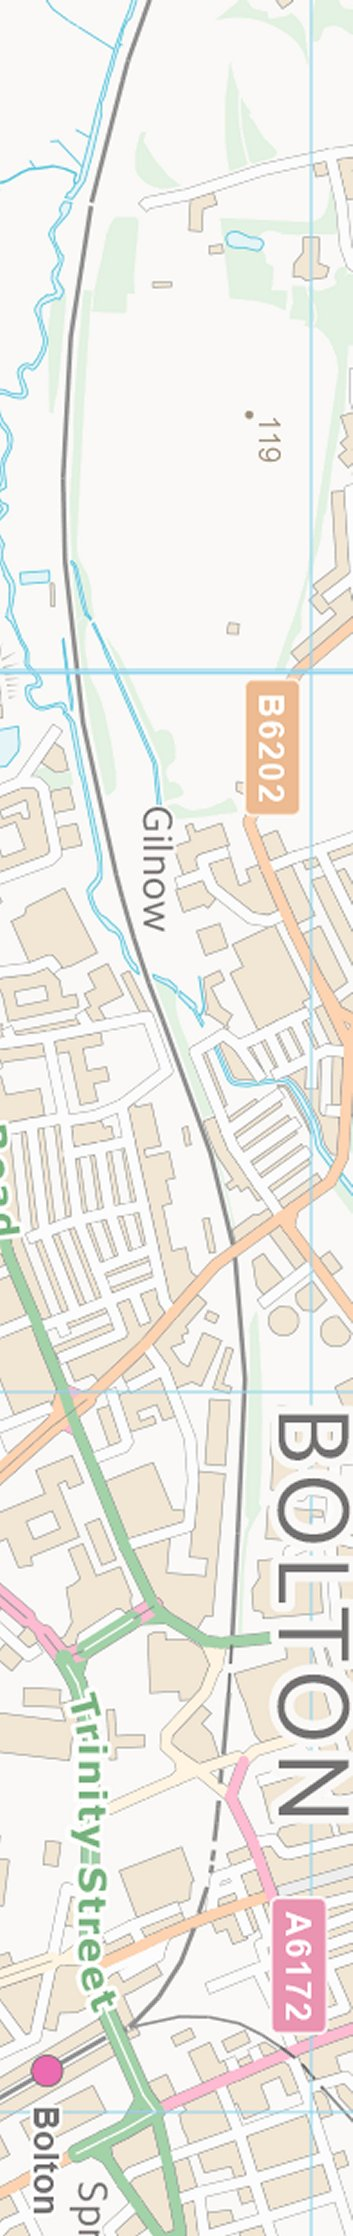 Section from the Ordnance Survey OpenSource mapping 2013 showing L&YR railway line in West Bolton